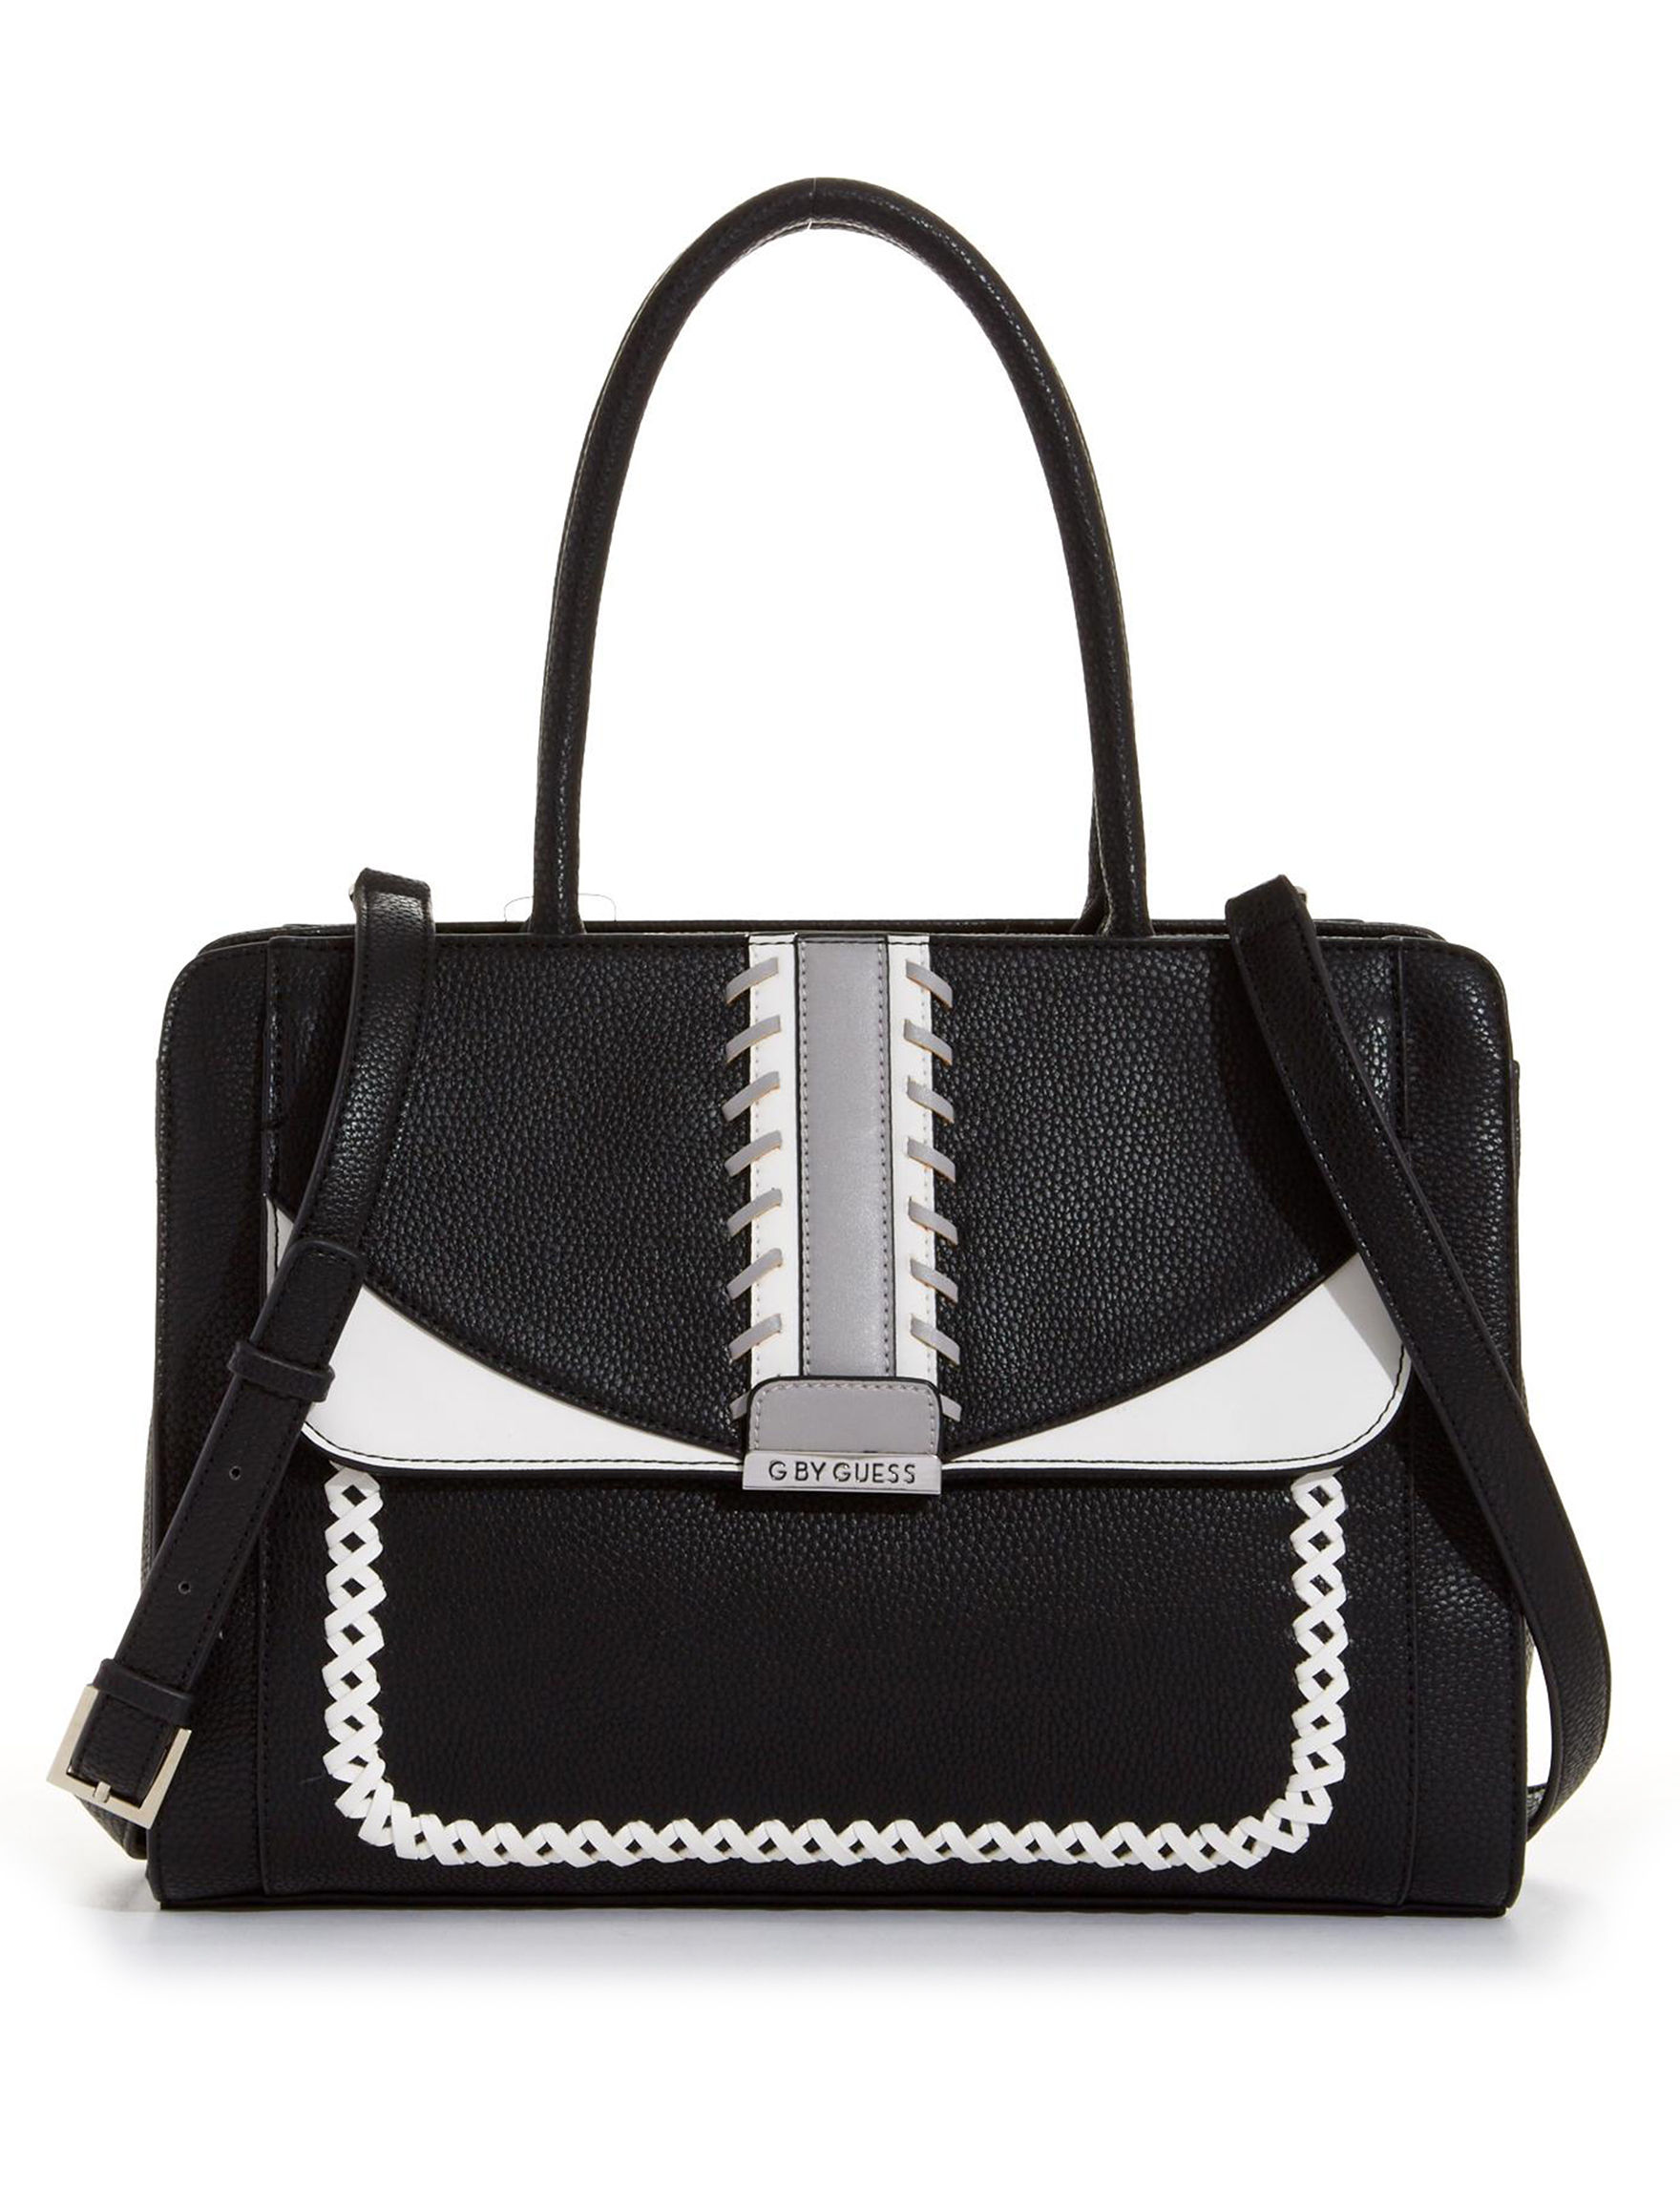 G by Guess Black Multi